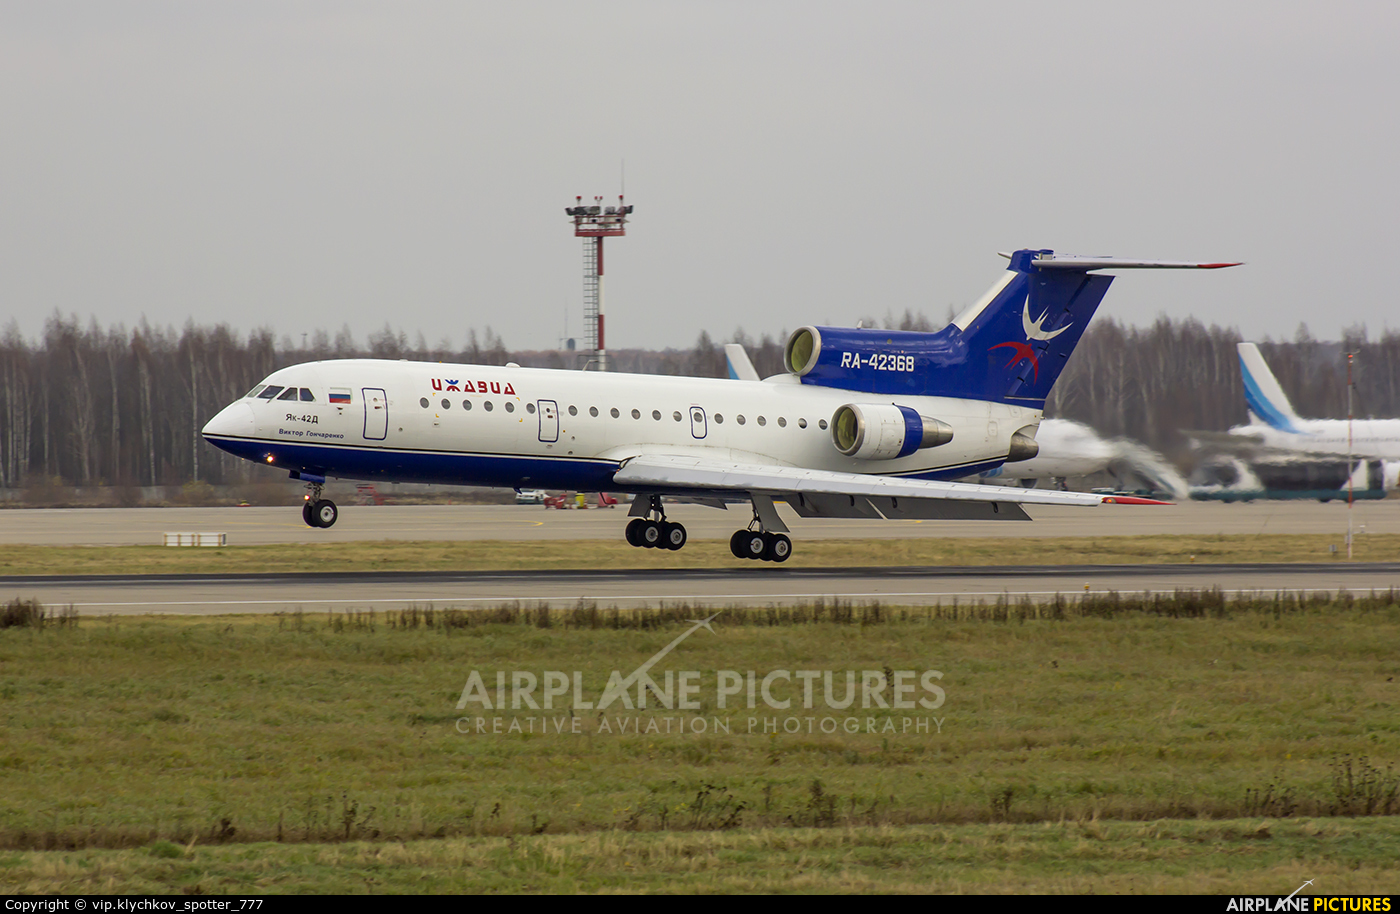 Izhavia RA-42368 aircraft at Moscow - Domodedovo